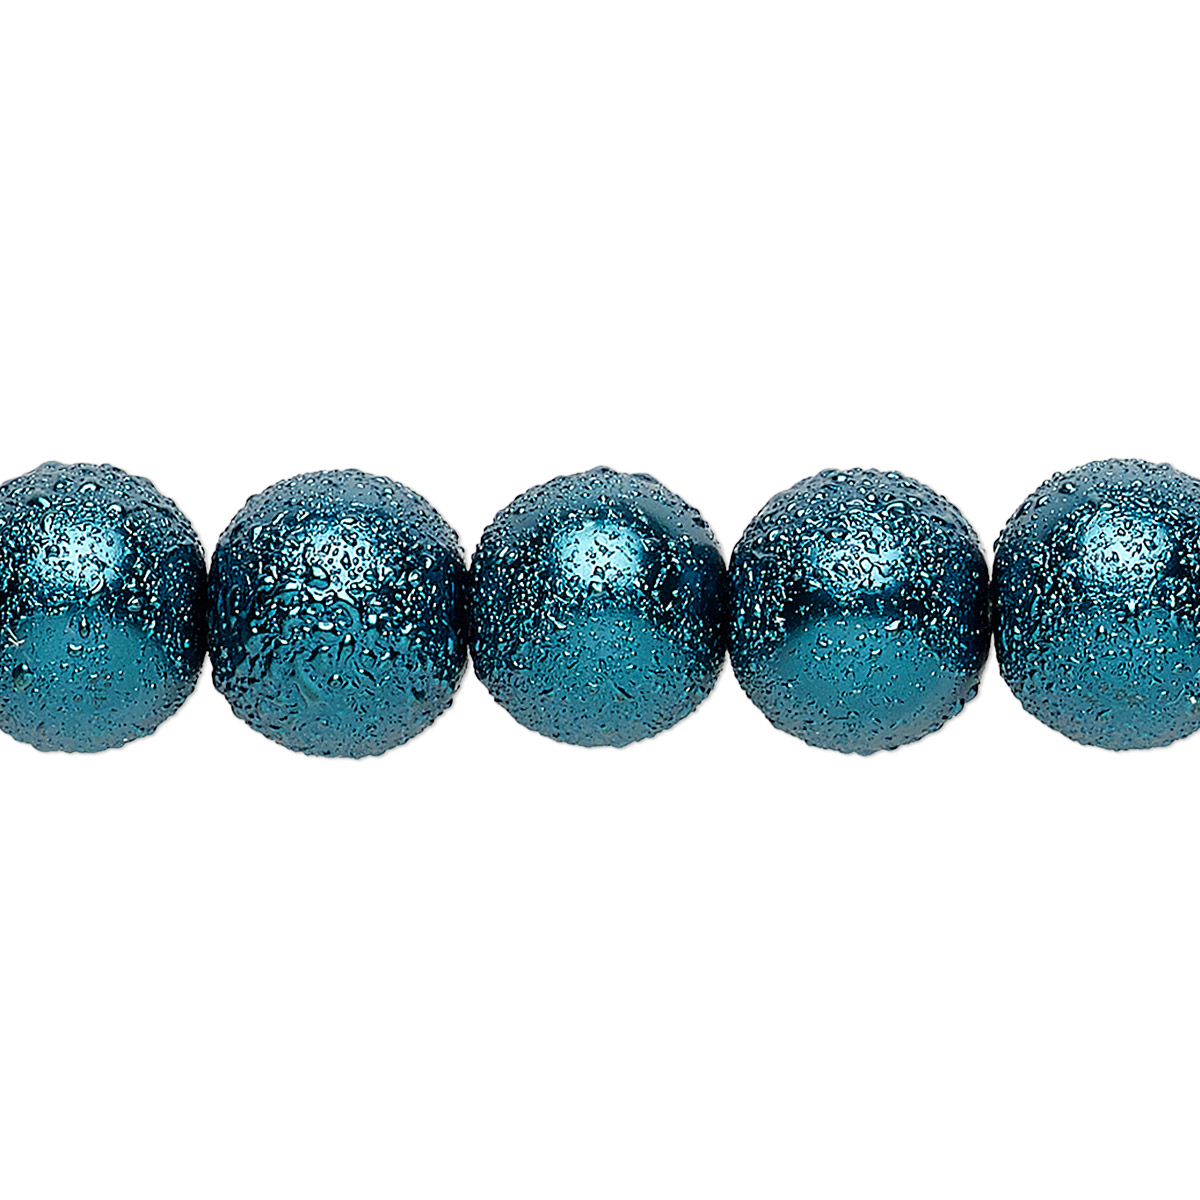 Bead Glass Opaque Teal 10mm Textured Round Sold Per